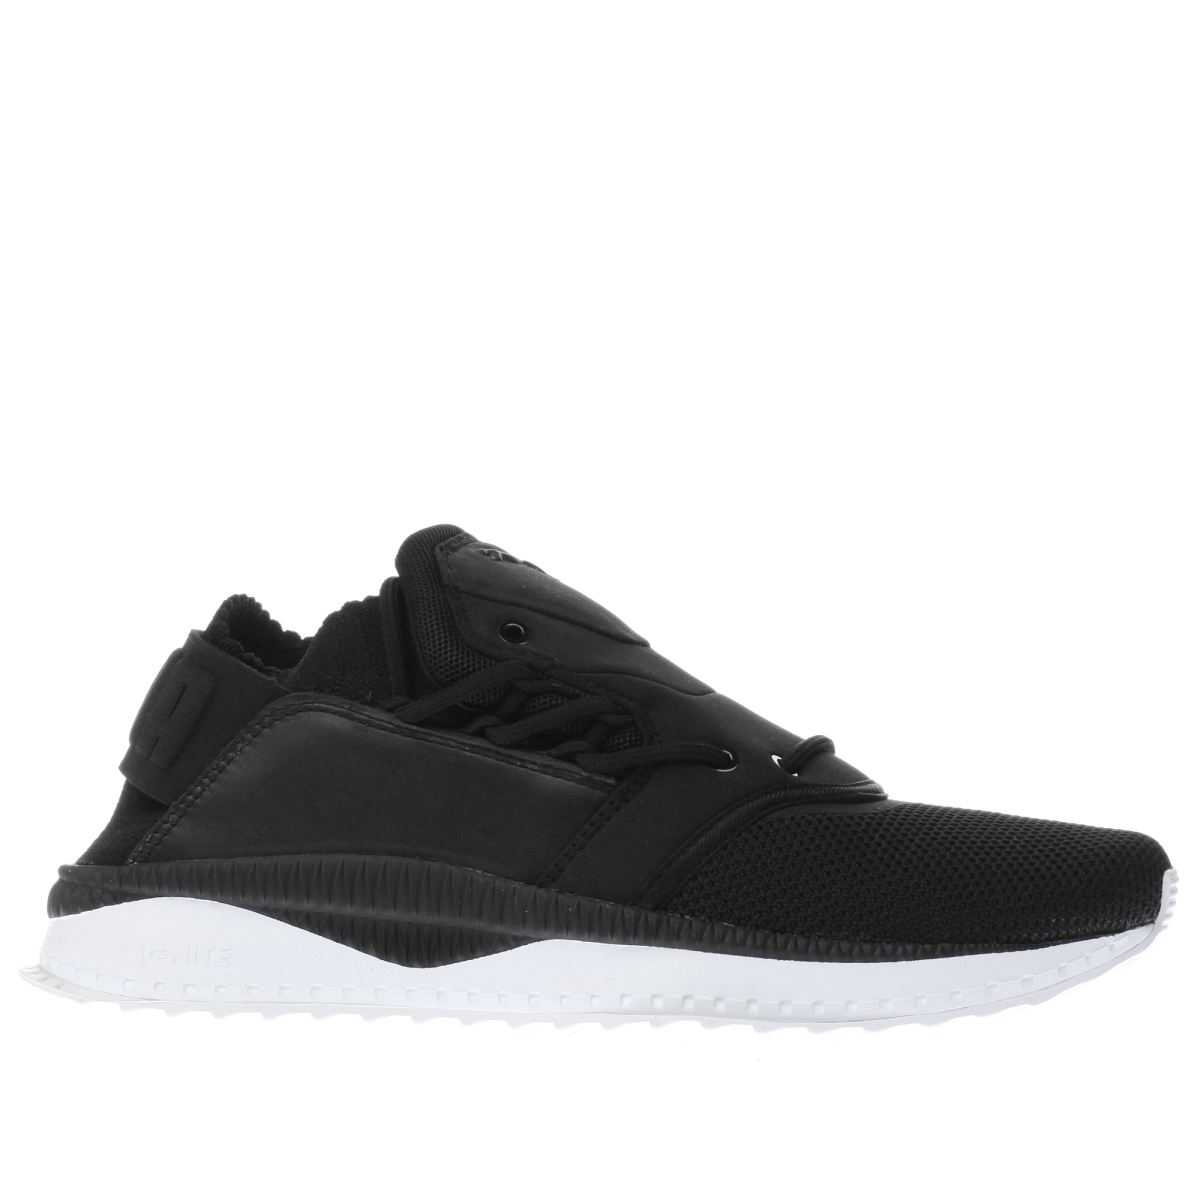 puma black tsugi shinsei trainers